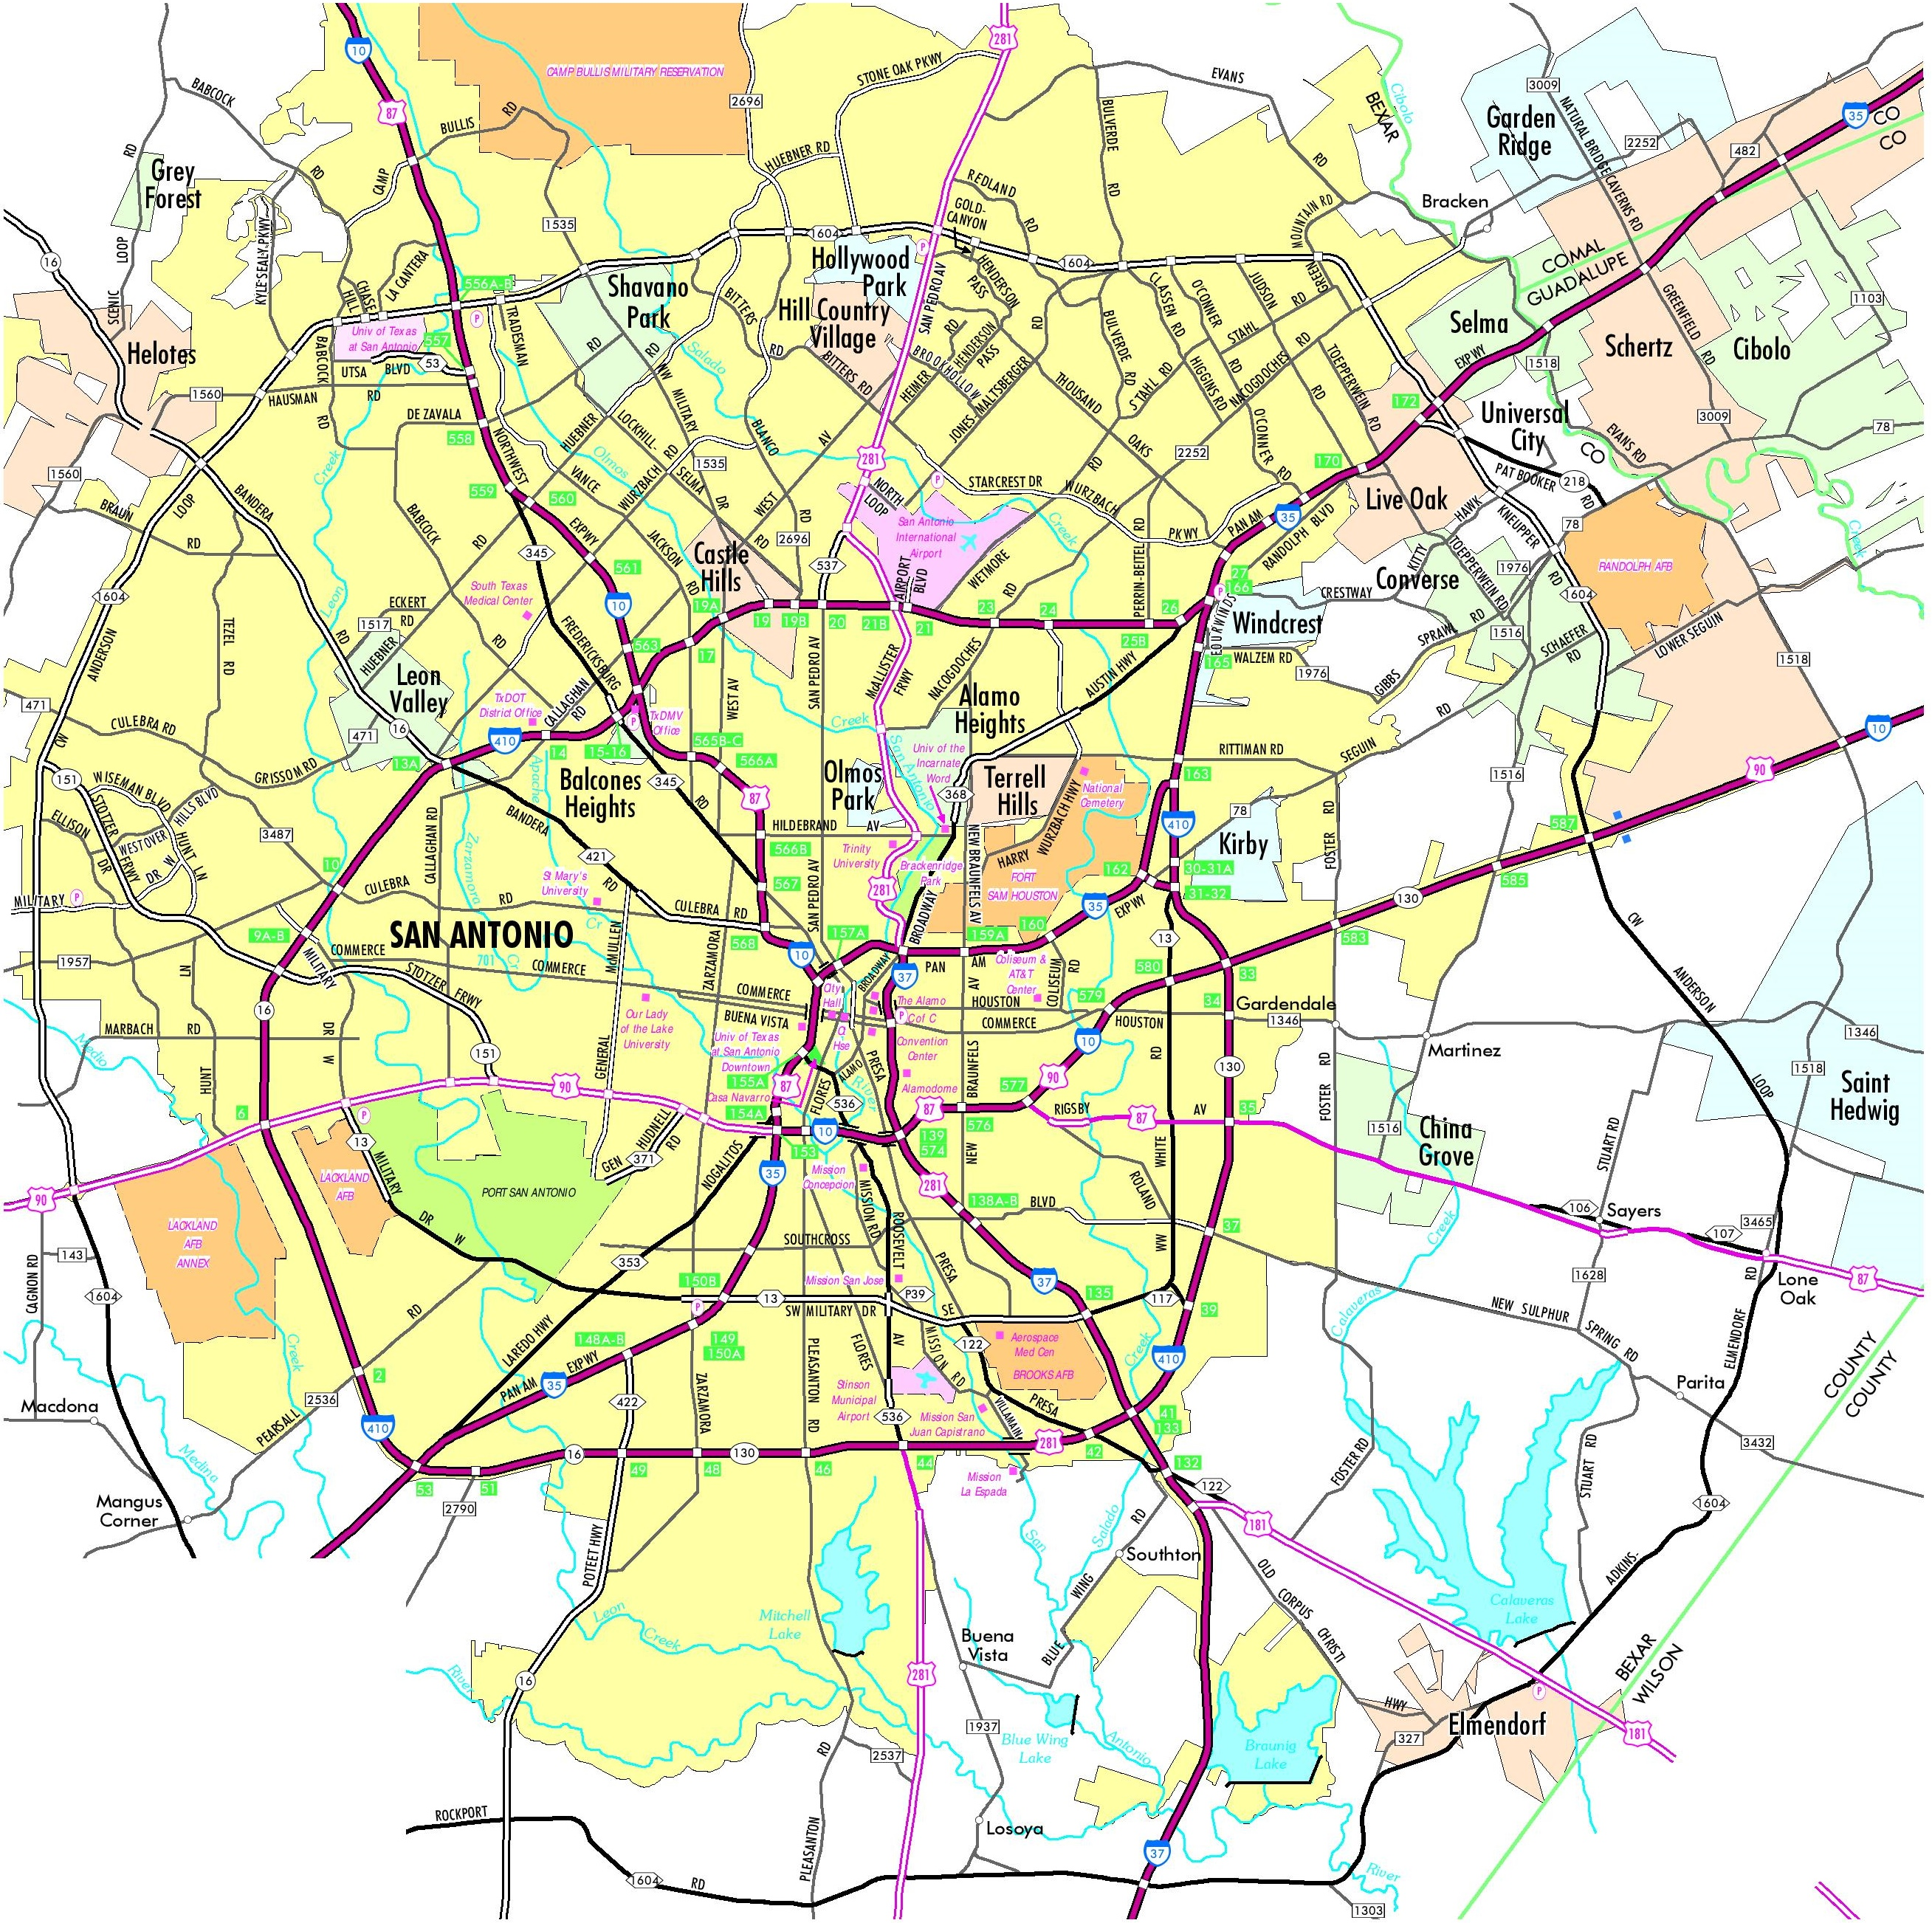 San Antonio Maps Texas US Maps Of San Antonio - San antonio on us map